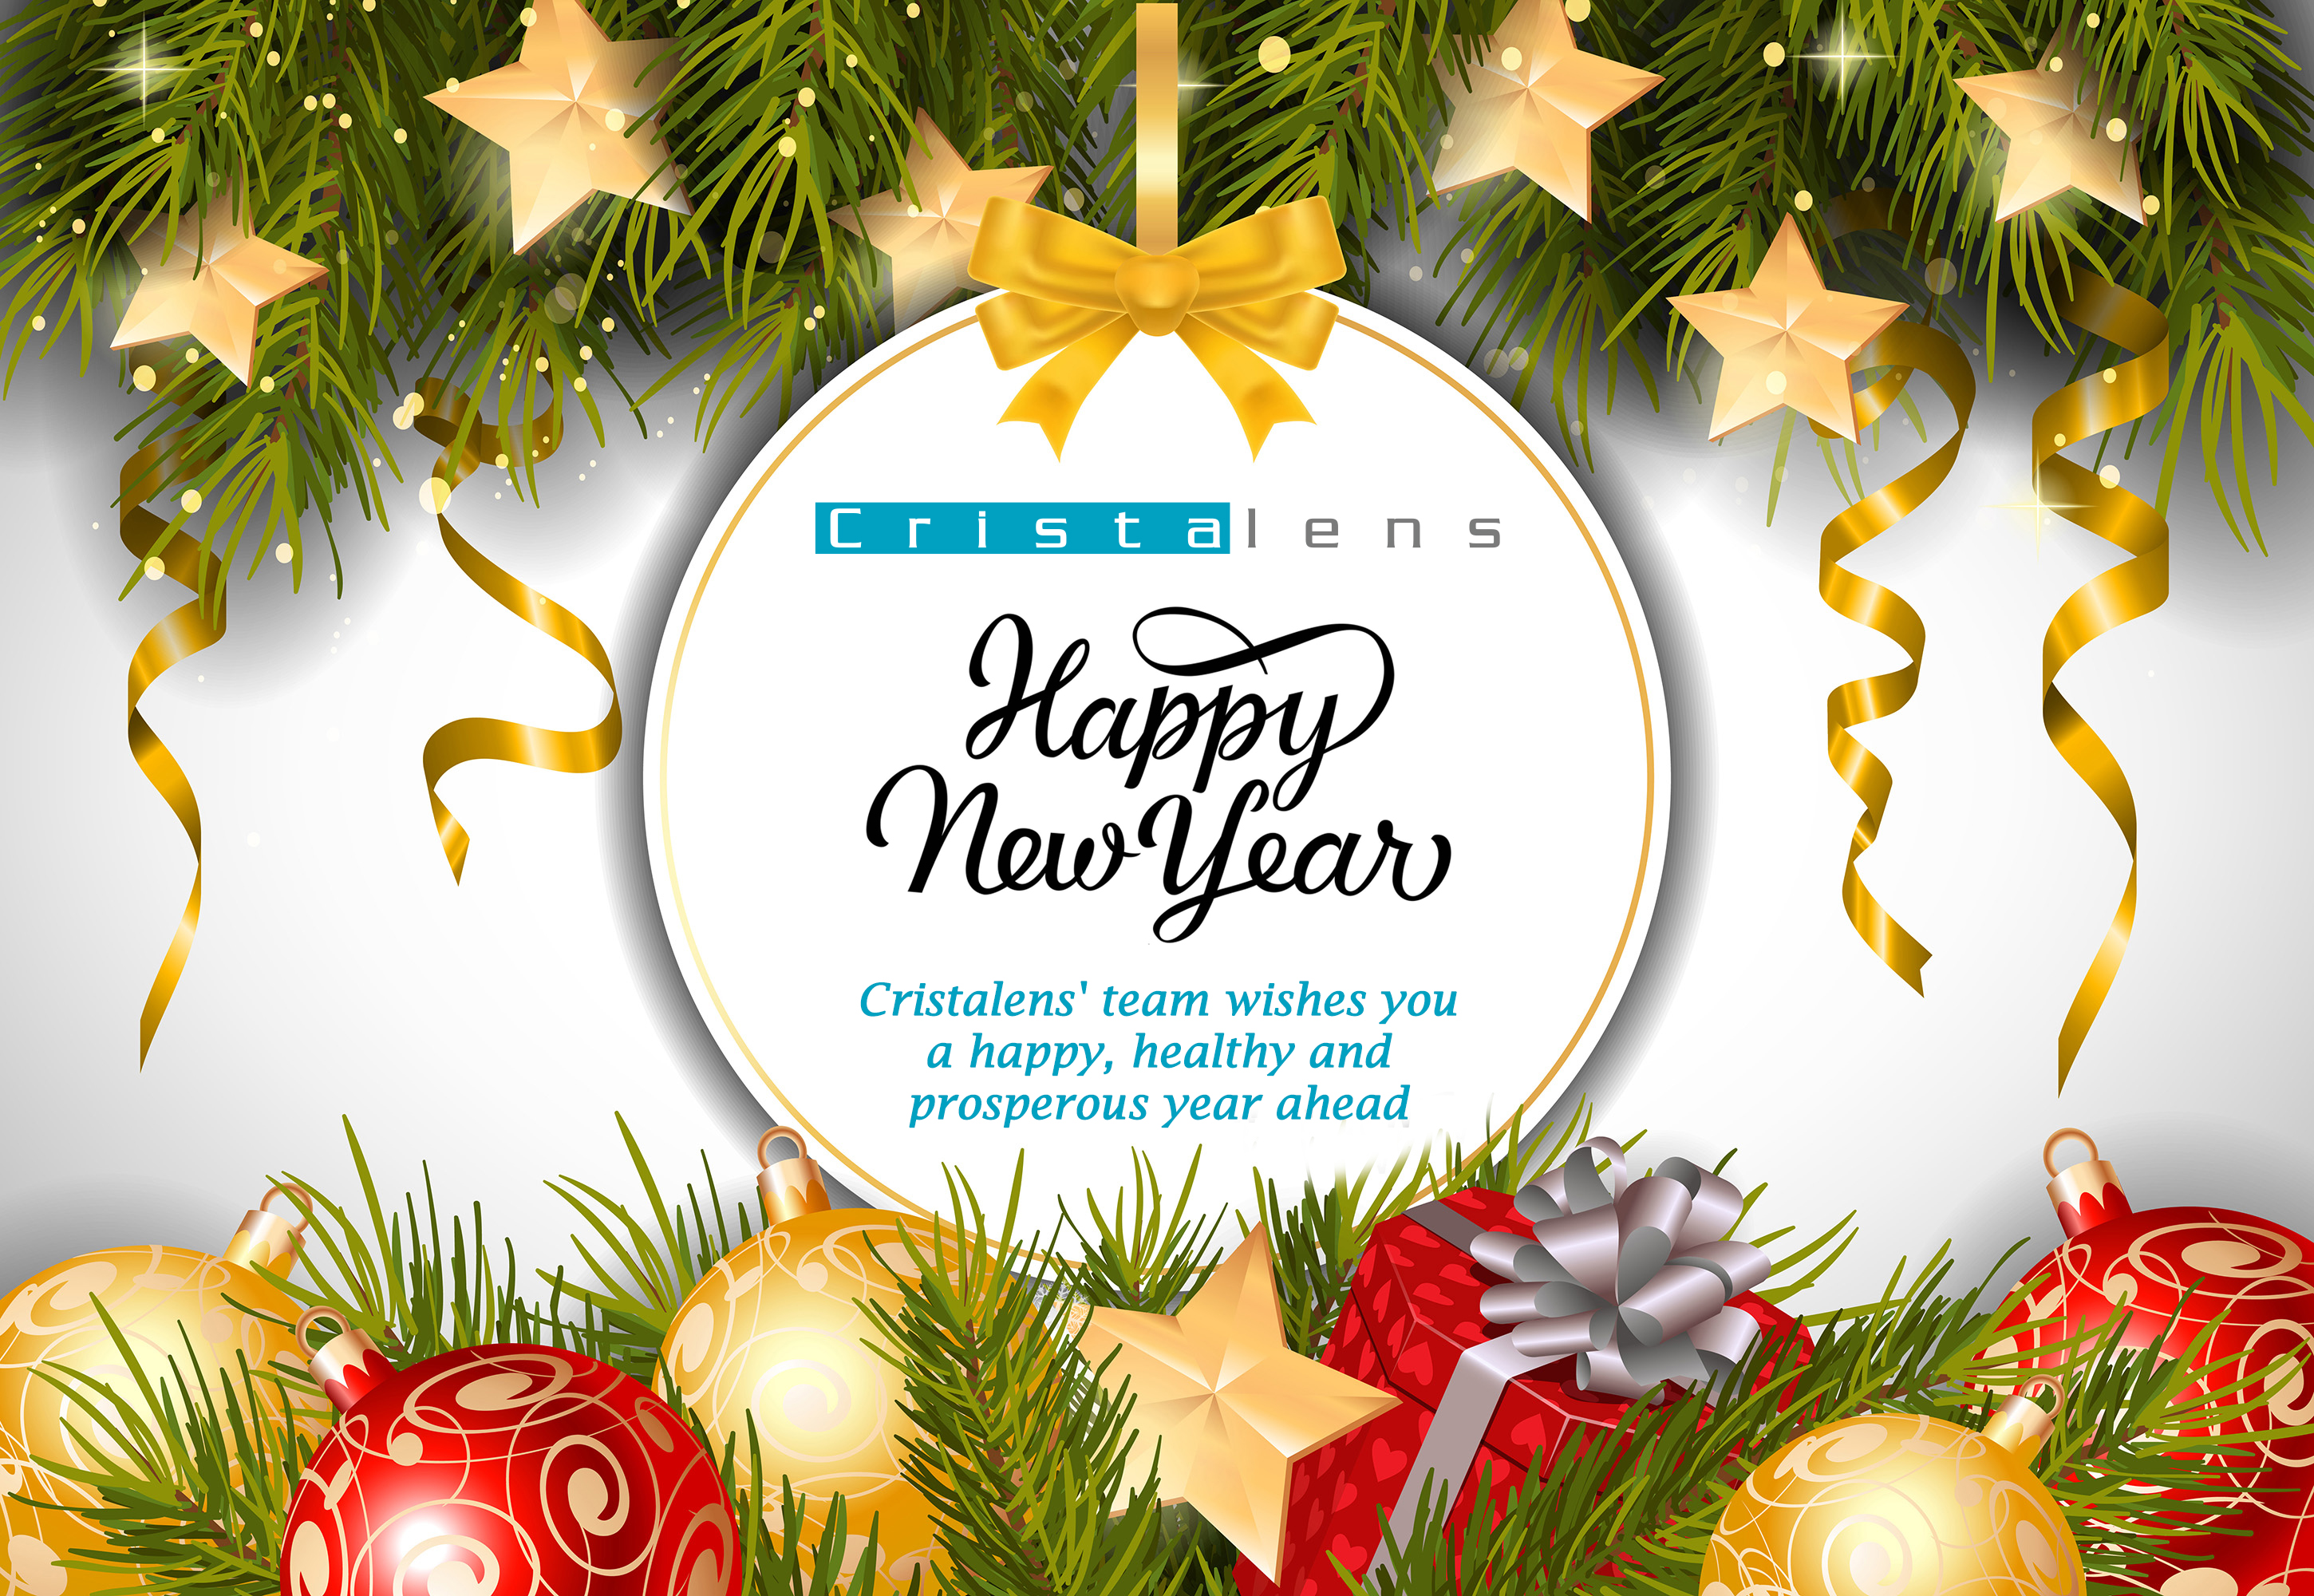 Happy New Year from Cristalens Team ! - Cristalens